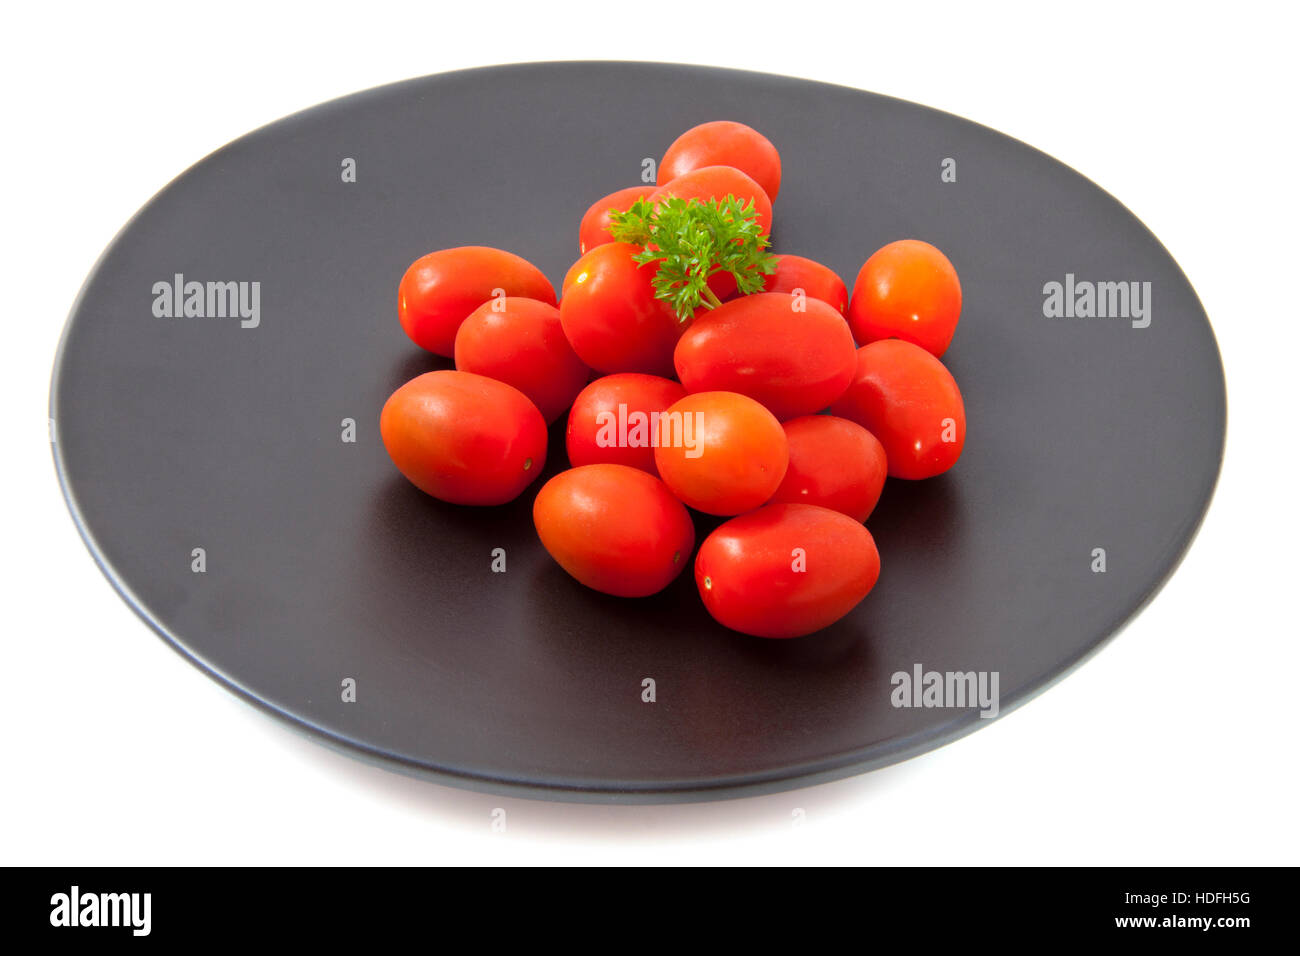 Little tomatoes on a black plate isolated over white - Stock Image